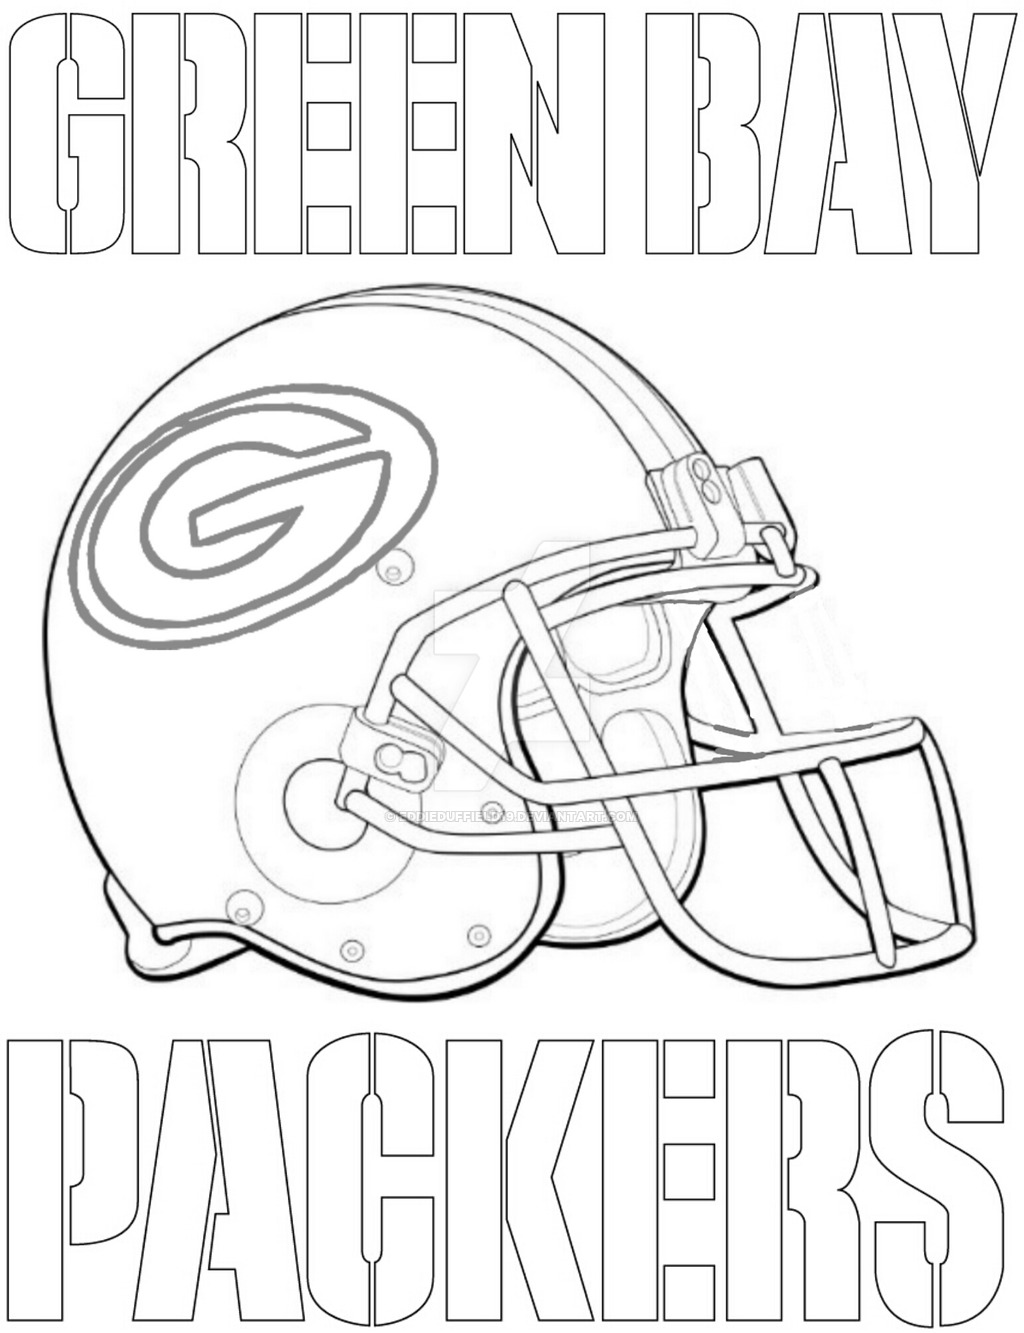 colouring football football helmet coloring pages to print at getcolorings colouring football